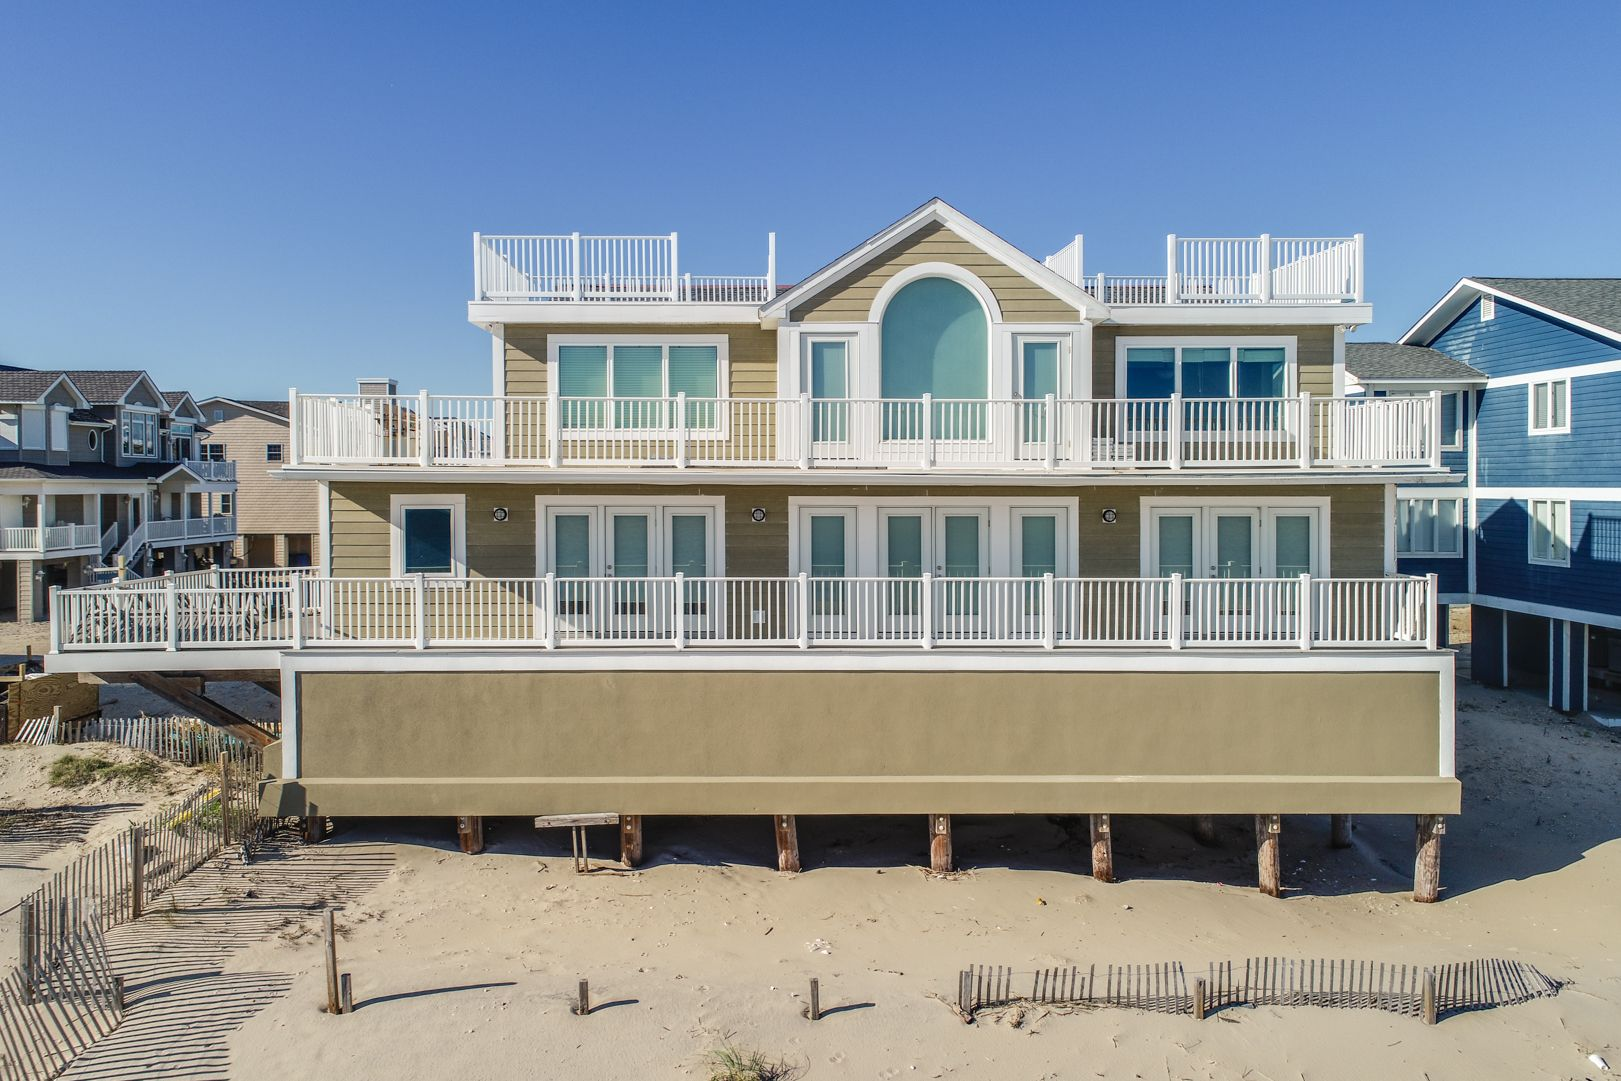 4zi2XY3w MILLION DOLLAR LISTING: 1 Beach Avenue, Rehoboth Beach, DE 19971 - Jack Lingo REALTOR